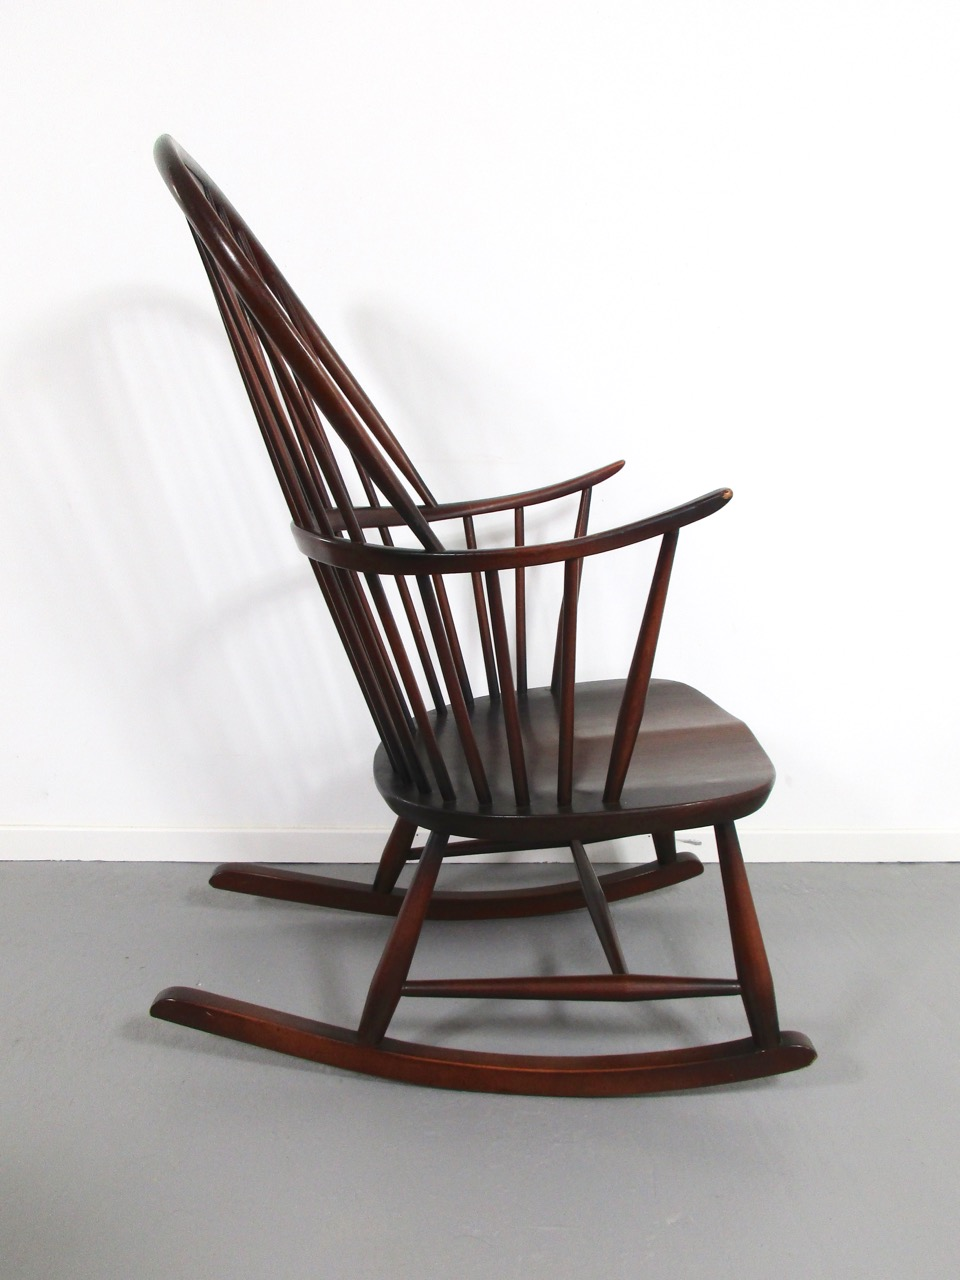 Schaukelstuhl rocking chair ercol england 7 retro salon for Rocking chair schaukelstuhl